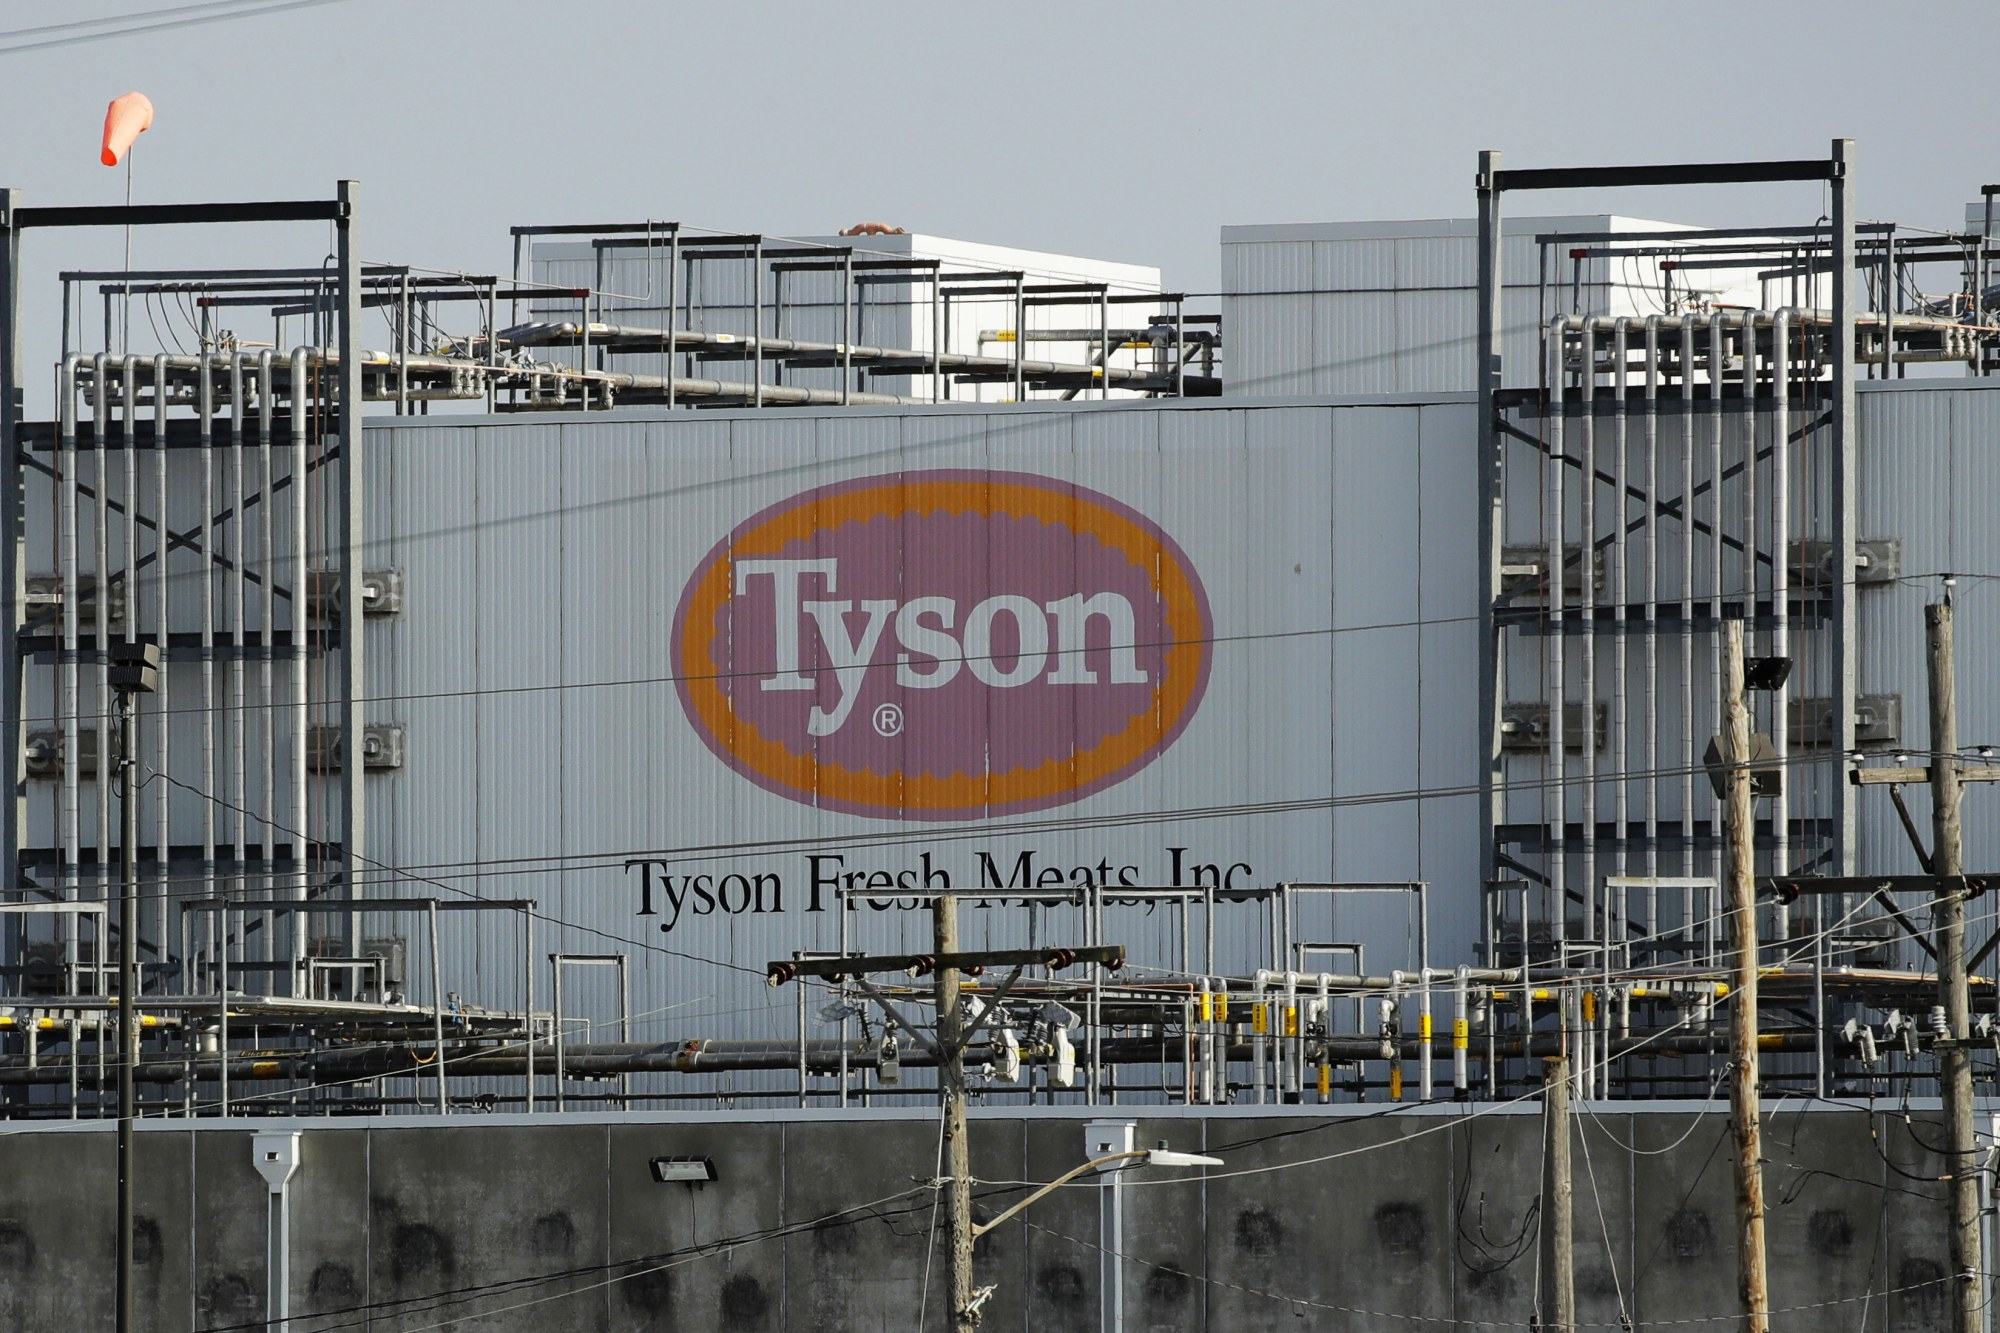 Nearly 8.5 Million Pounds of Tyson Chicken Products Recalled Over Fears of Listeria Contamination